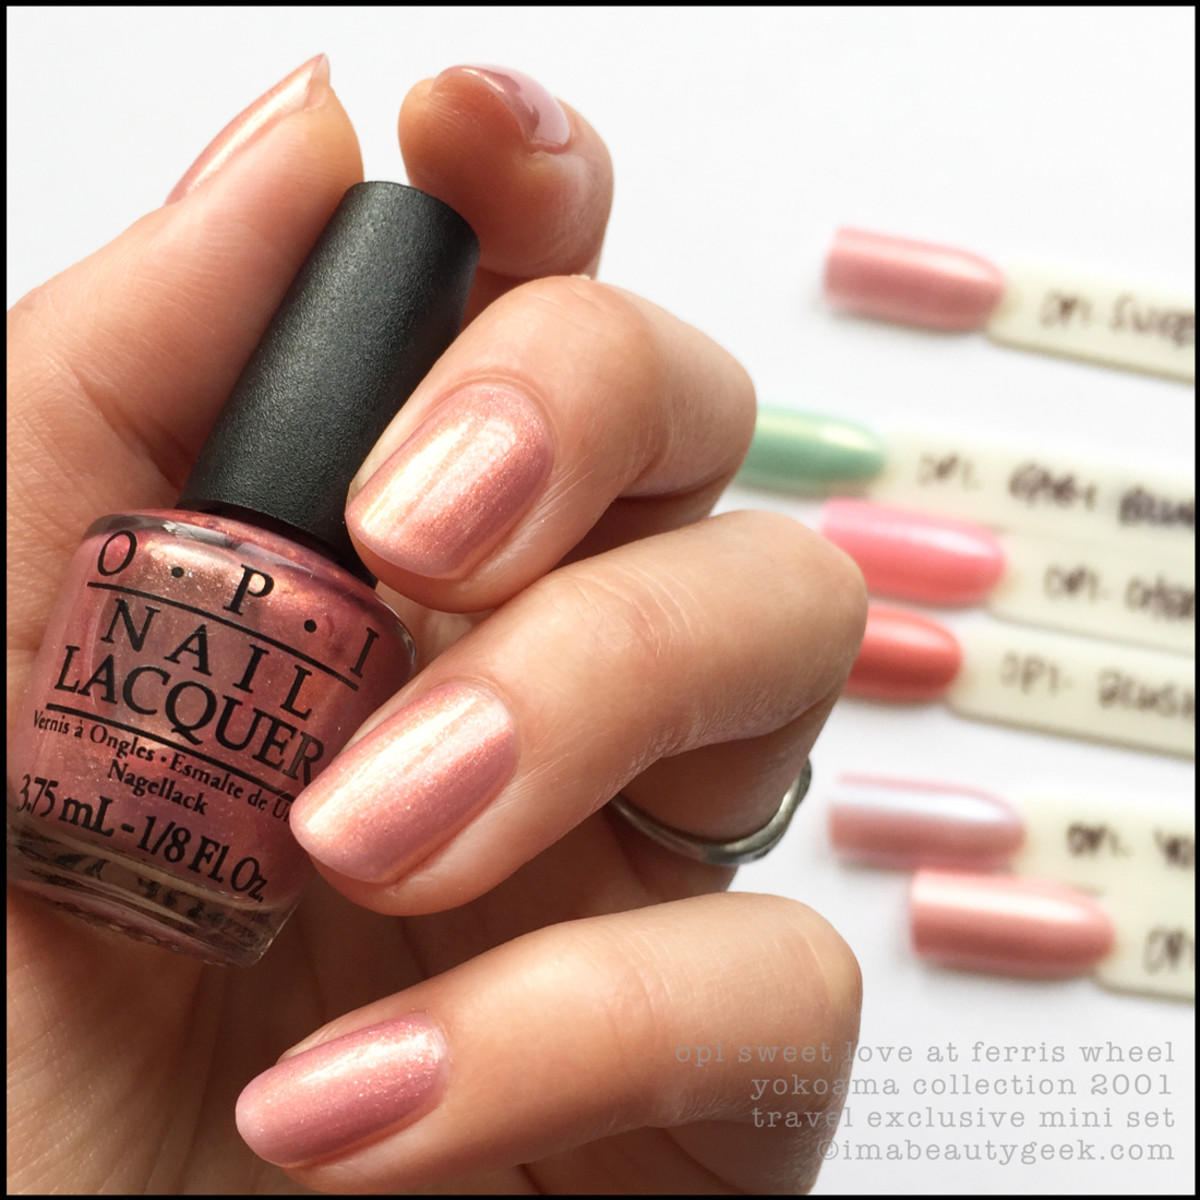 OPI Sweet Love at Ferris Wheel_OPI Yokohama Collection 2001 Swatches